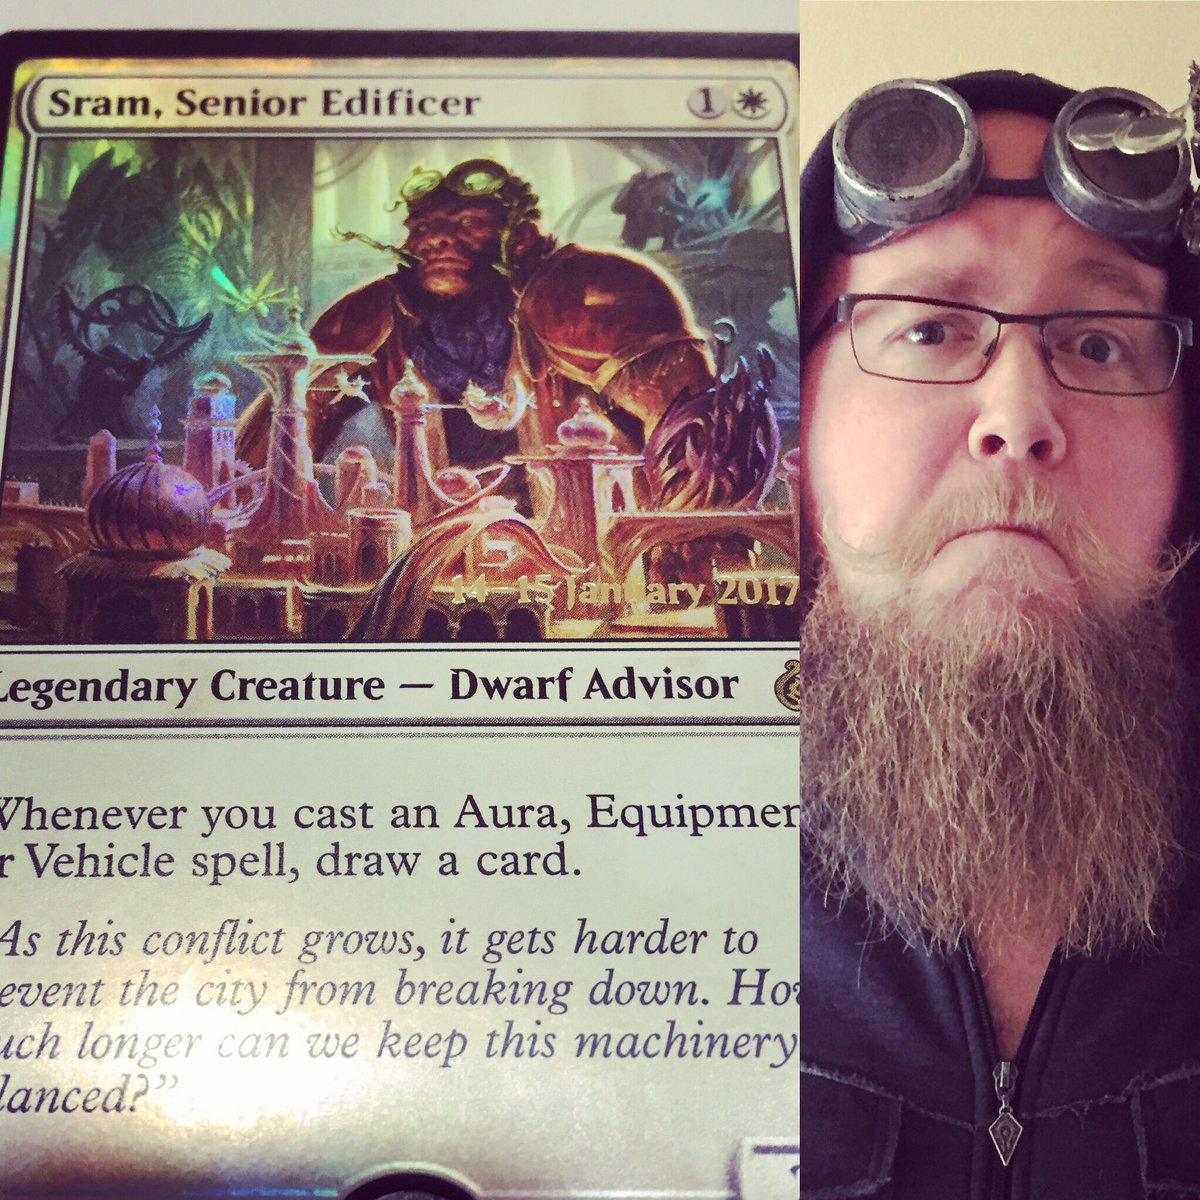 Got my Artificer's Goggles upon graduation from the Sram School of Technology! #MTGAER @wizards_magic https://t.co/c3FdkJ9ZA7